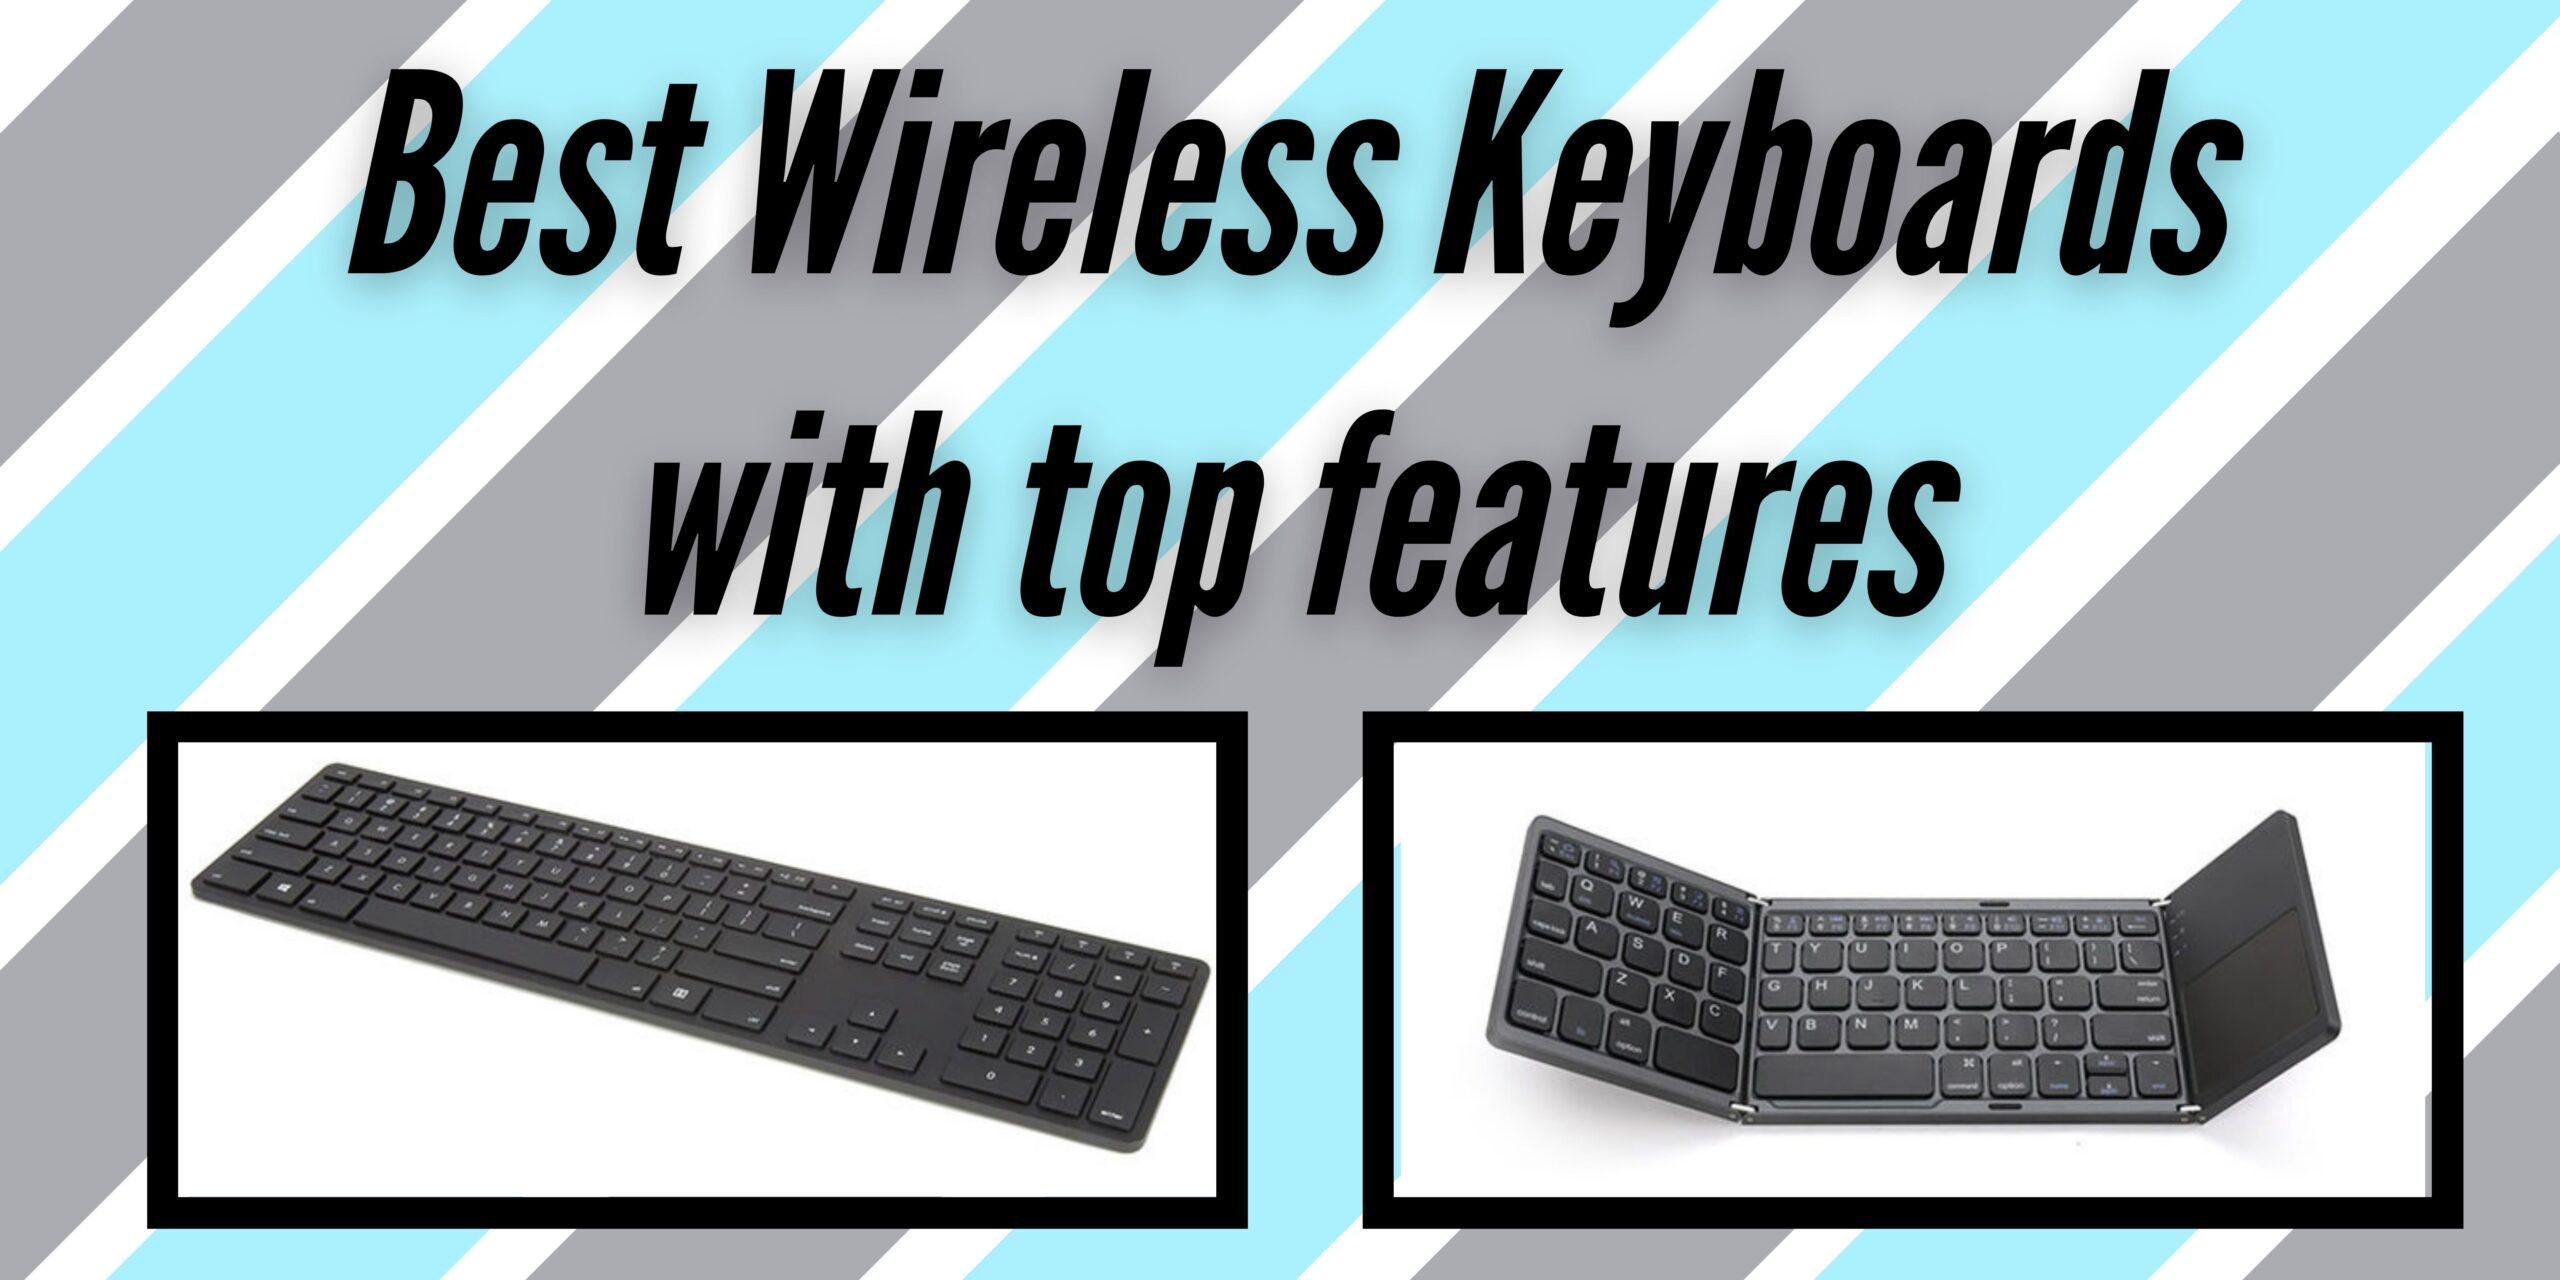 Best Wireless Keyboards with top features